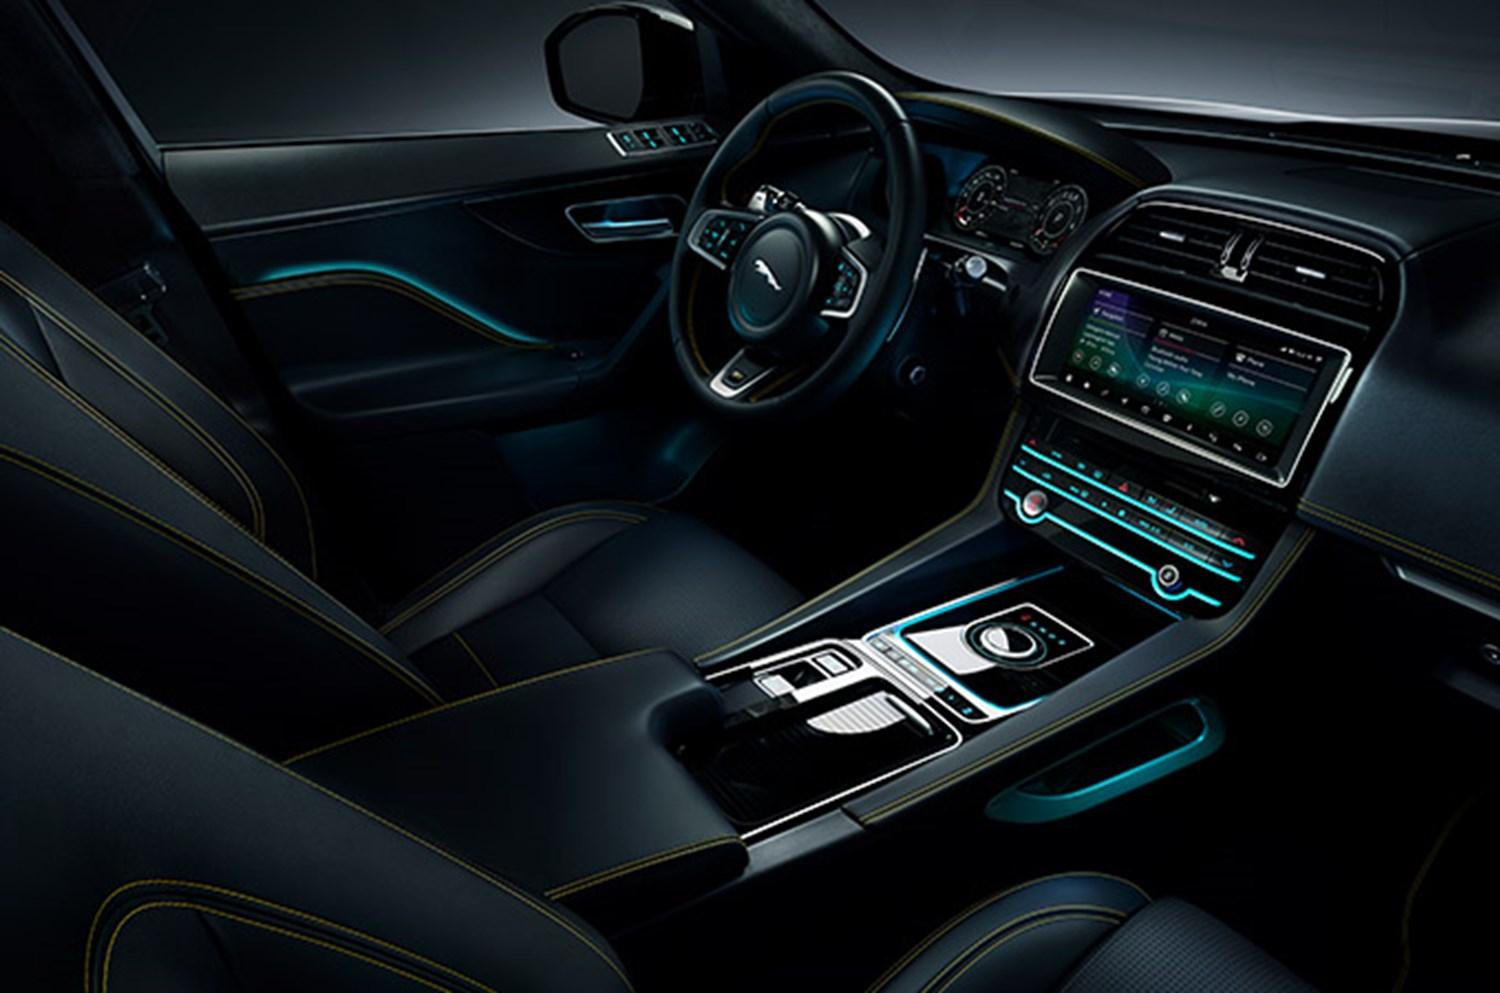 Jaguar interior dashboard and central console with blue illuminating lights